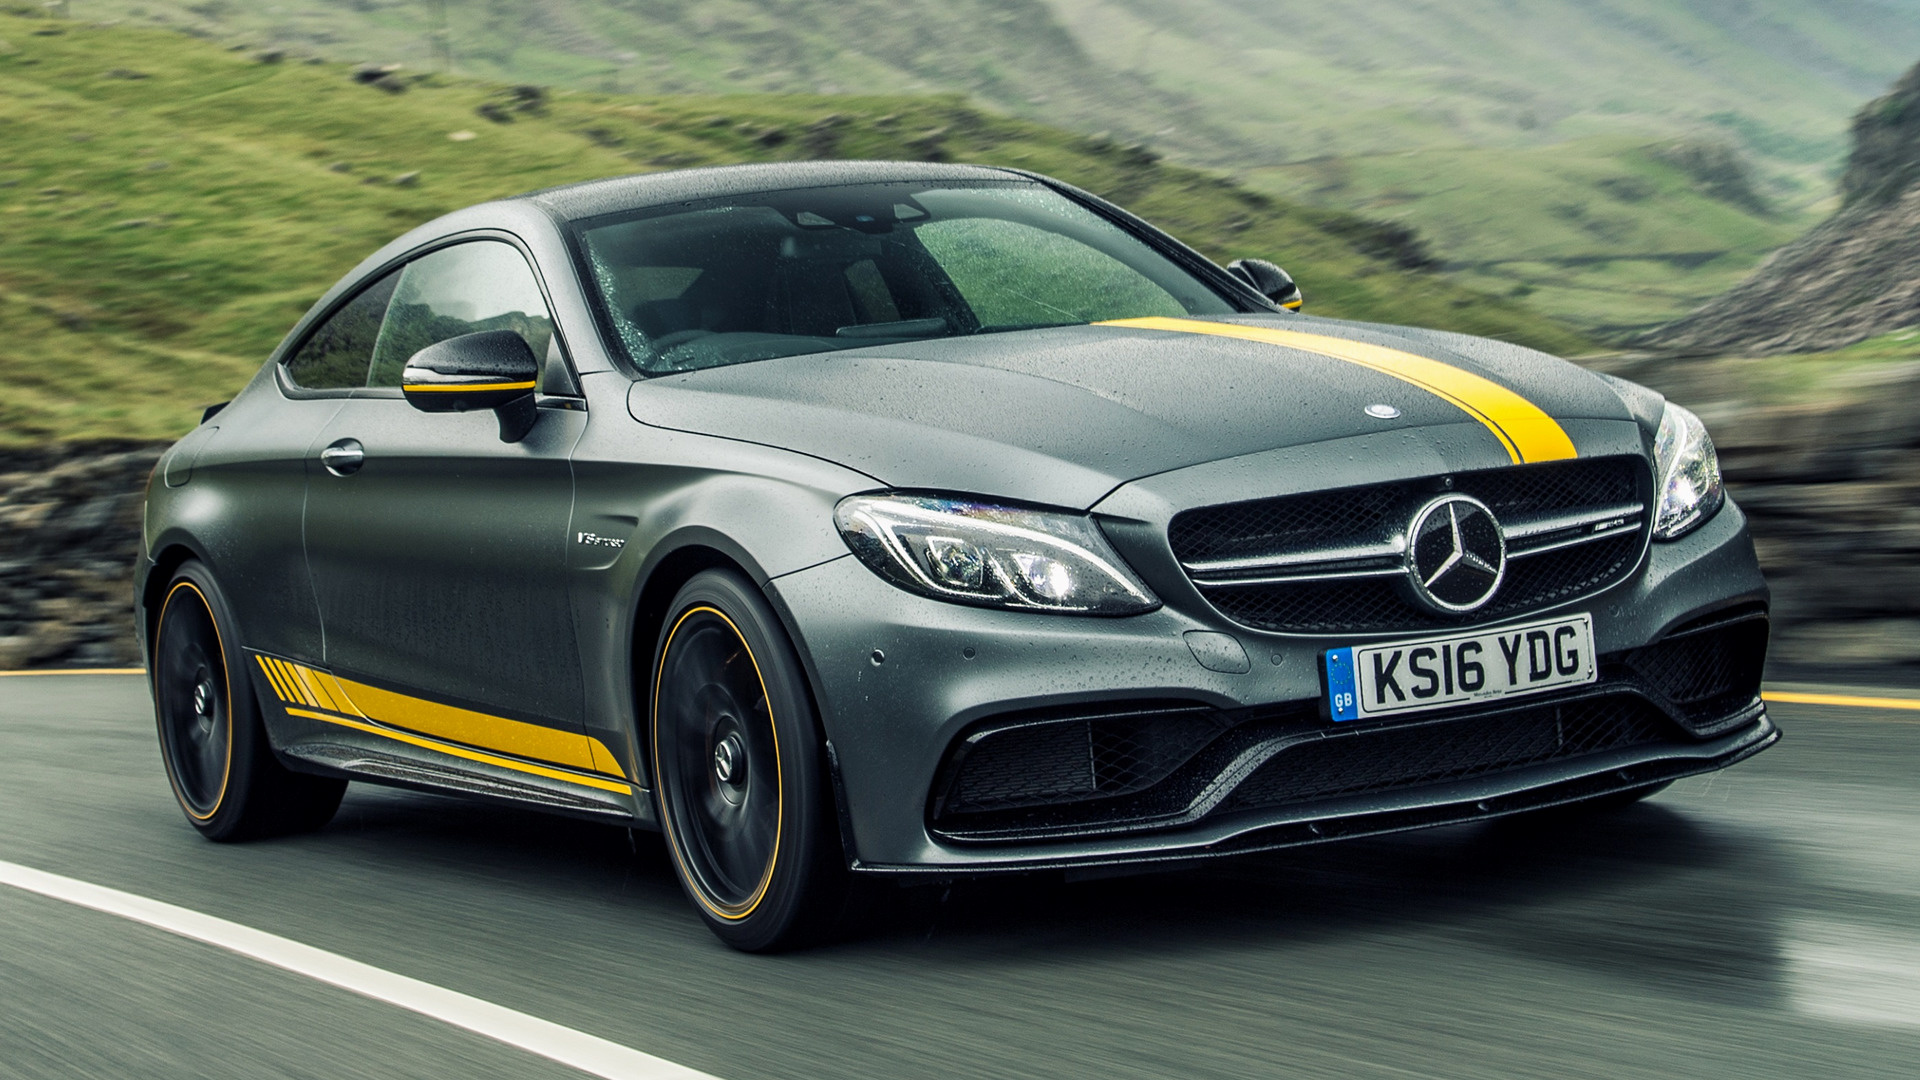 Mercedes amg c 63 s coupe edition 1 2016 wallpapers and hd images - Mercedes Amg C 63 S Coupe Edition 1 2016 Uk Thumbnail 48621 48621 Hd 16 9